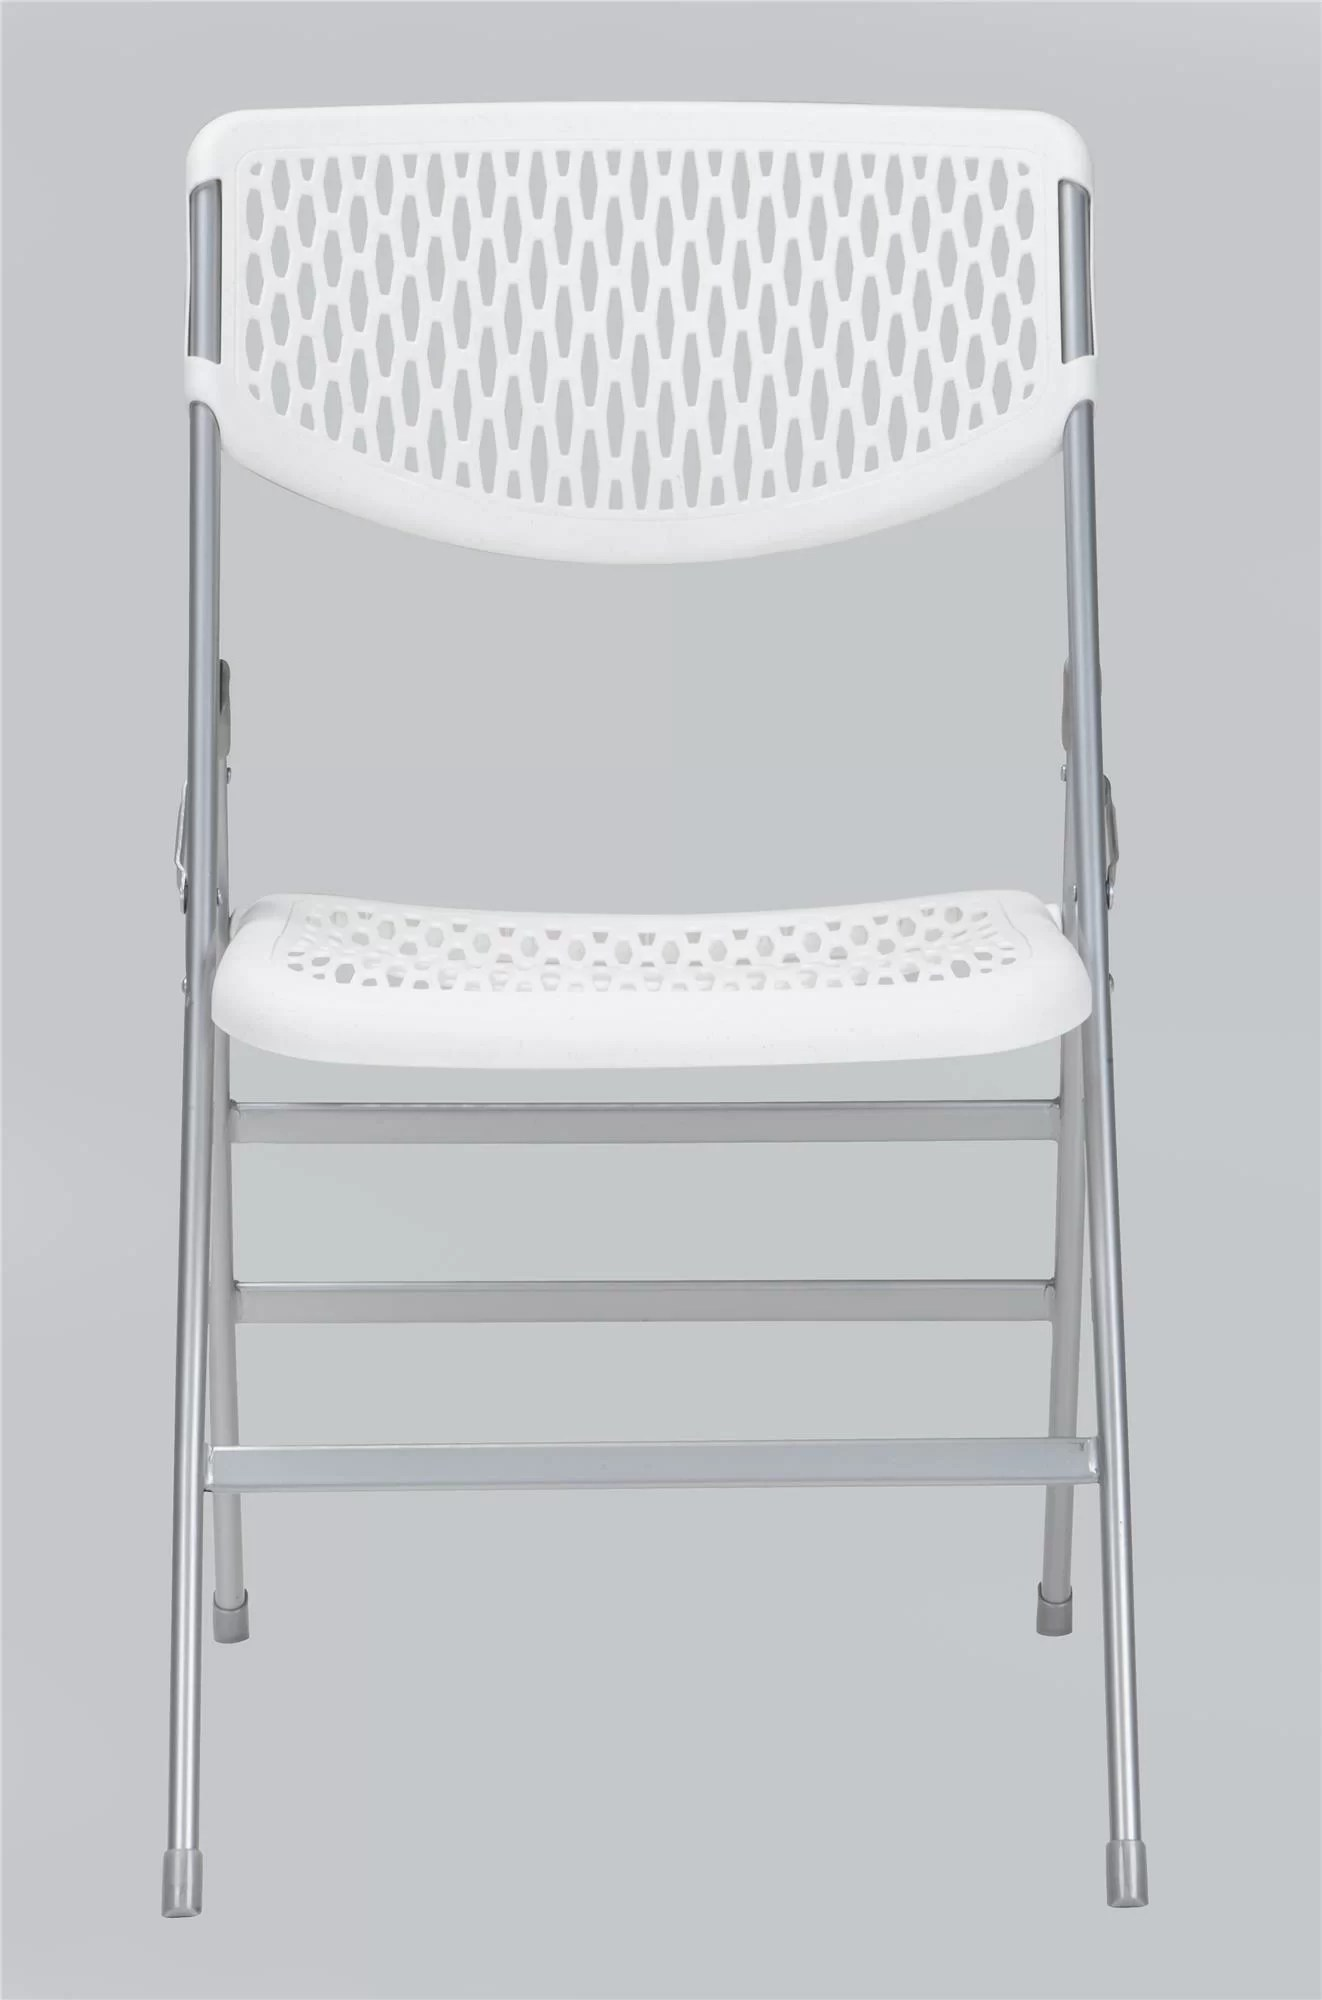 Cosco Folding Chair Commercial Resin Metal Folding Chair